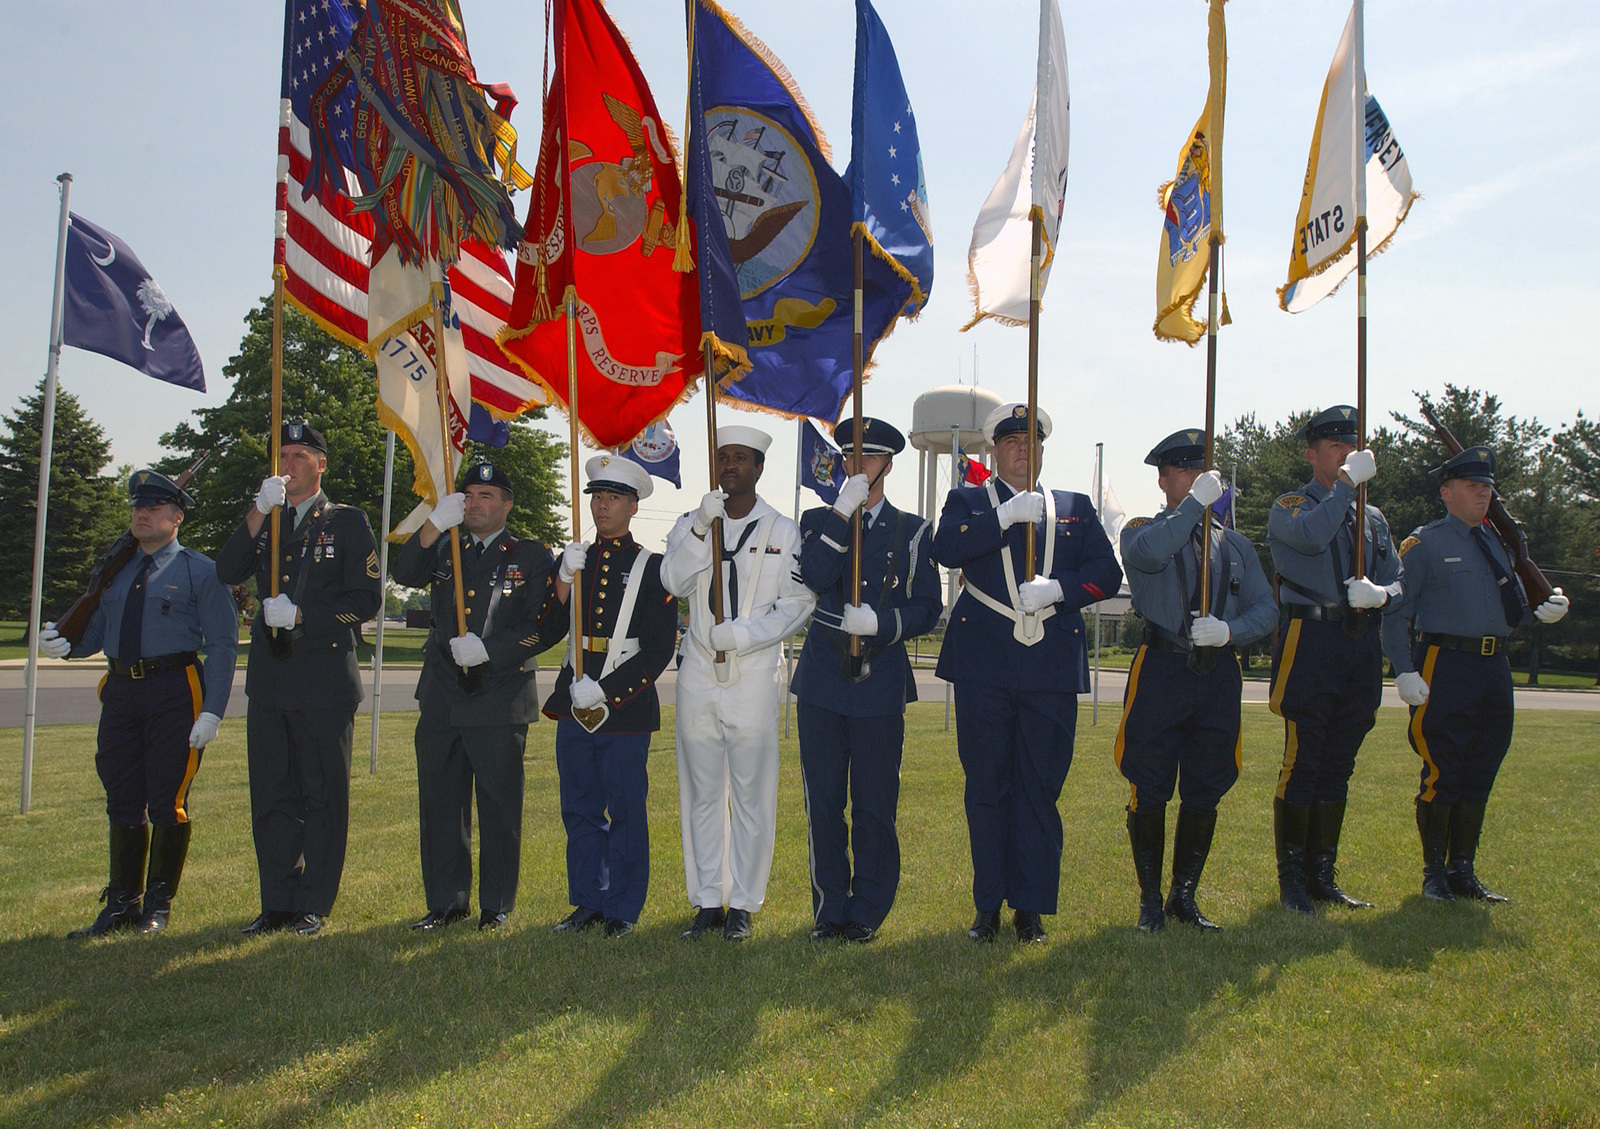 A Multi-Service Color Guard, made up of US Military personnel and